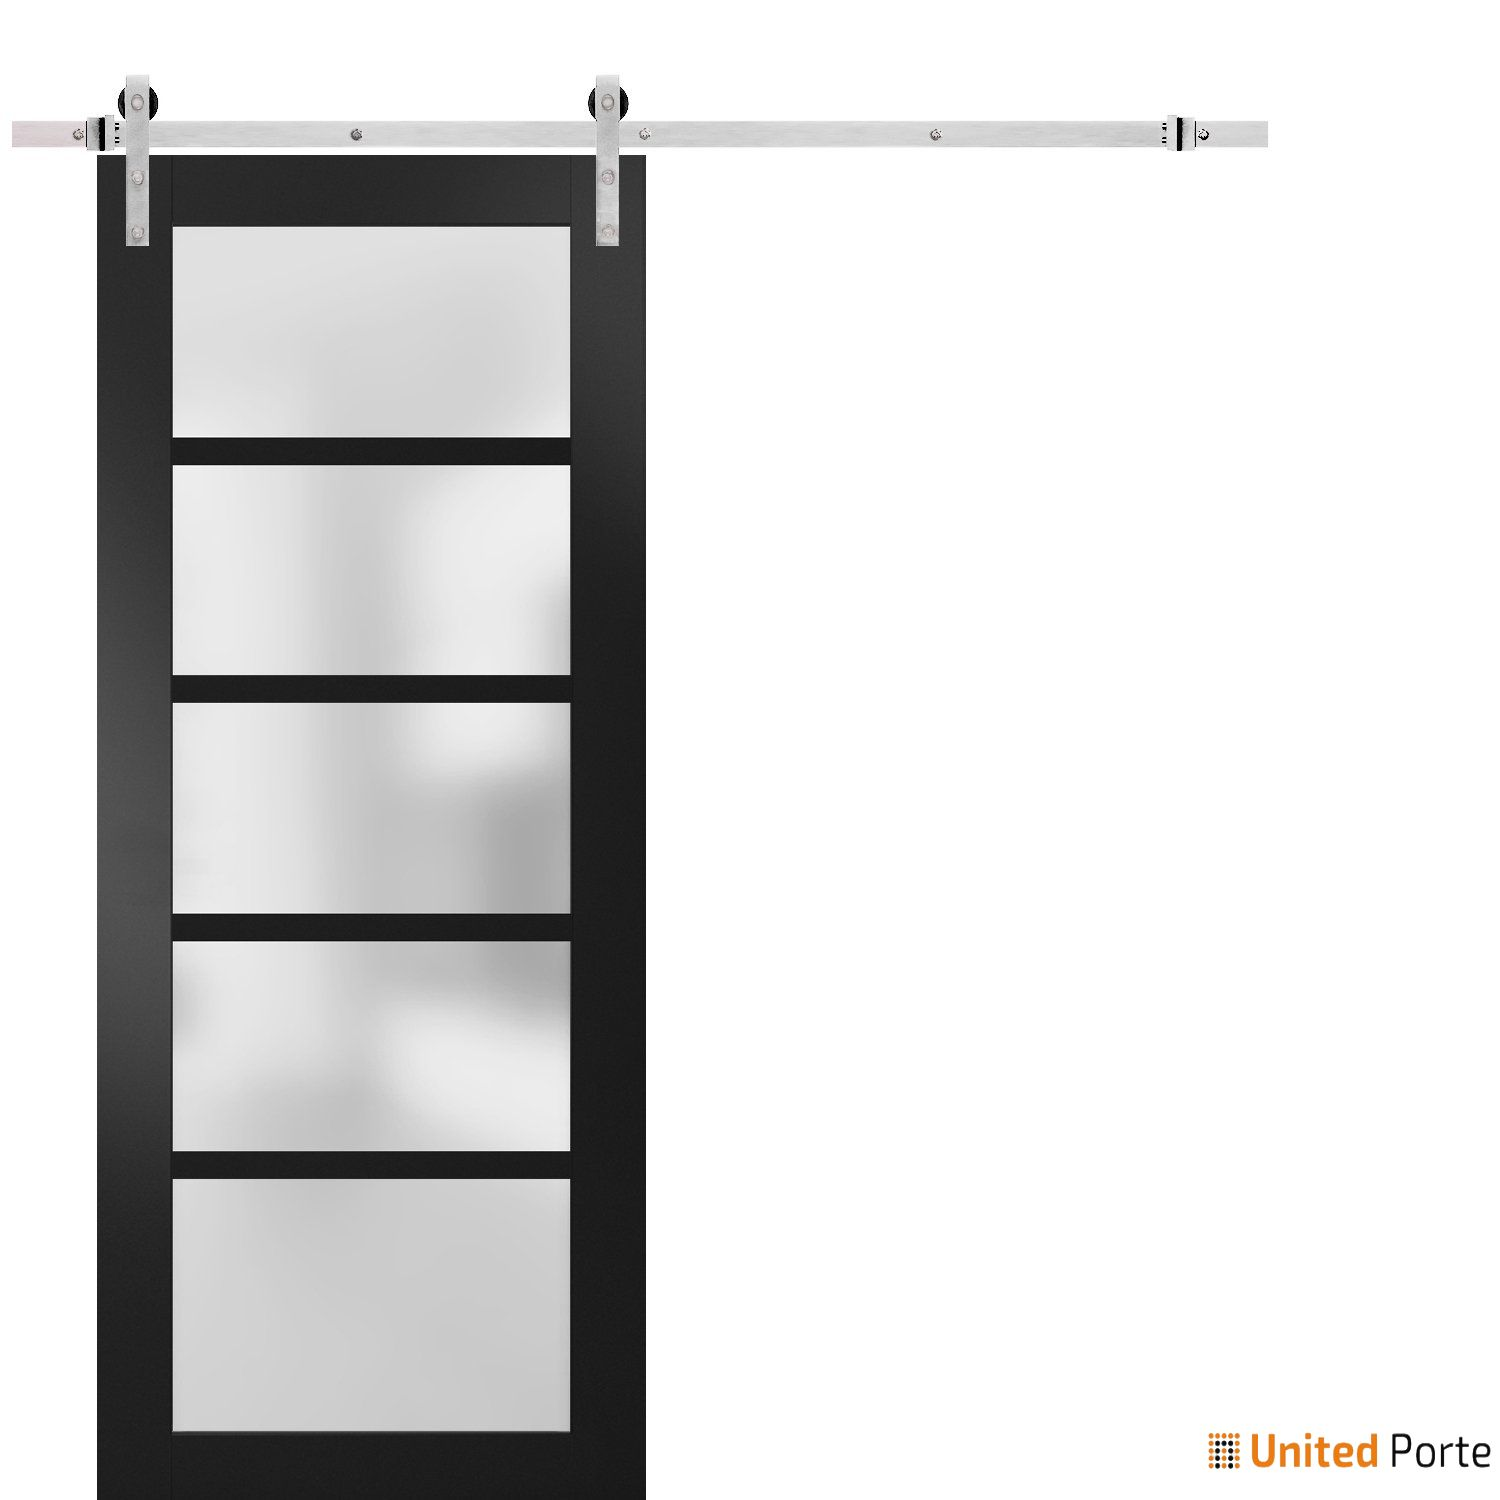 Quadro 4002 Matte Black with Frosted Opaque Glass Sliding Barn Door with Stainless Hardware | Lite Wooden Solid Panel Interior Barn Doors